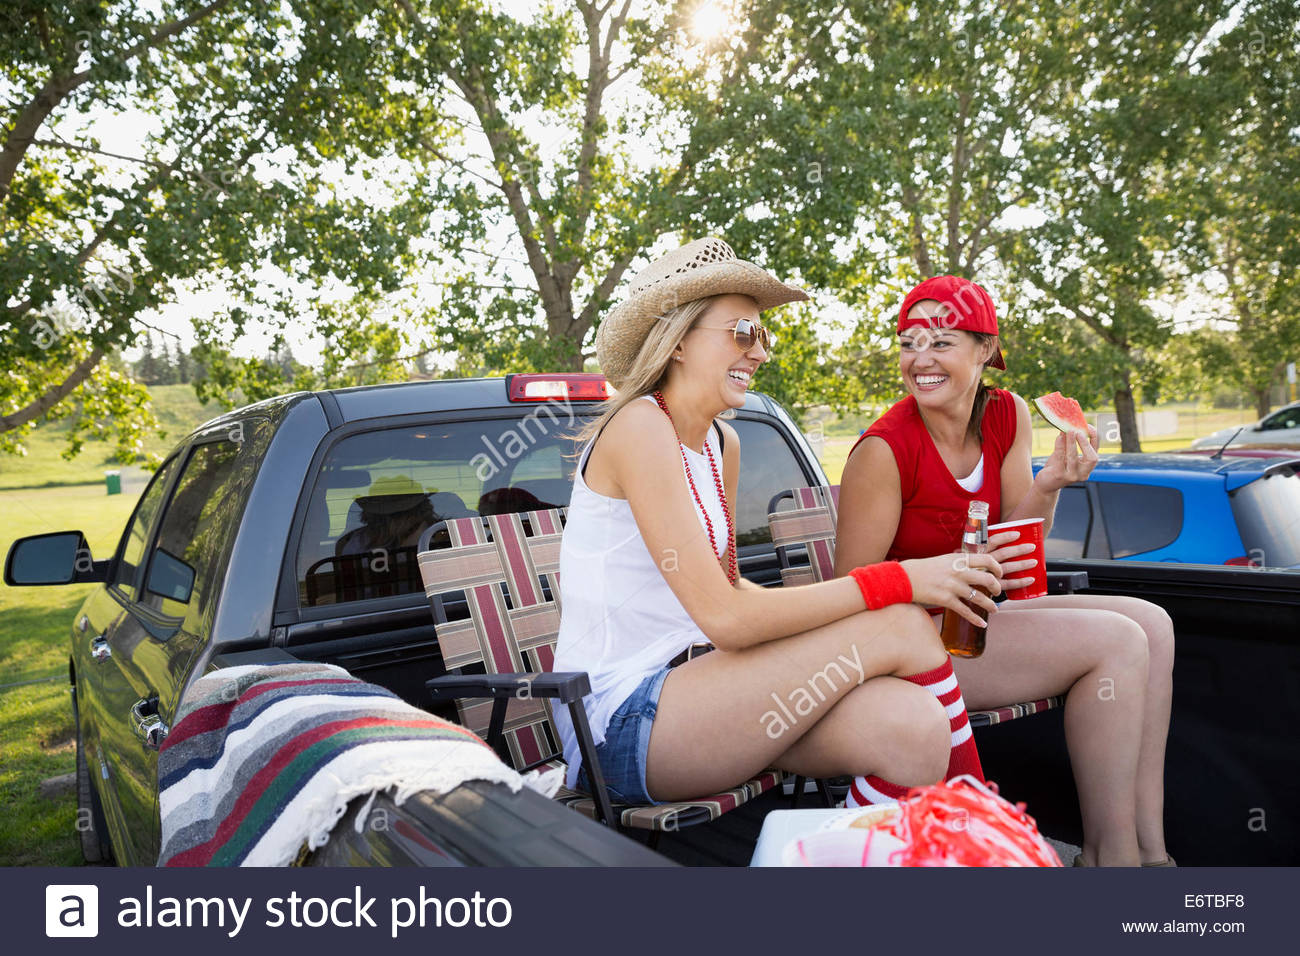 Women relaxing in truck bed at tailgate barbecue - Stock Image